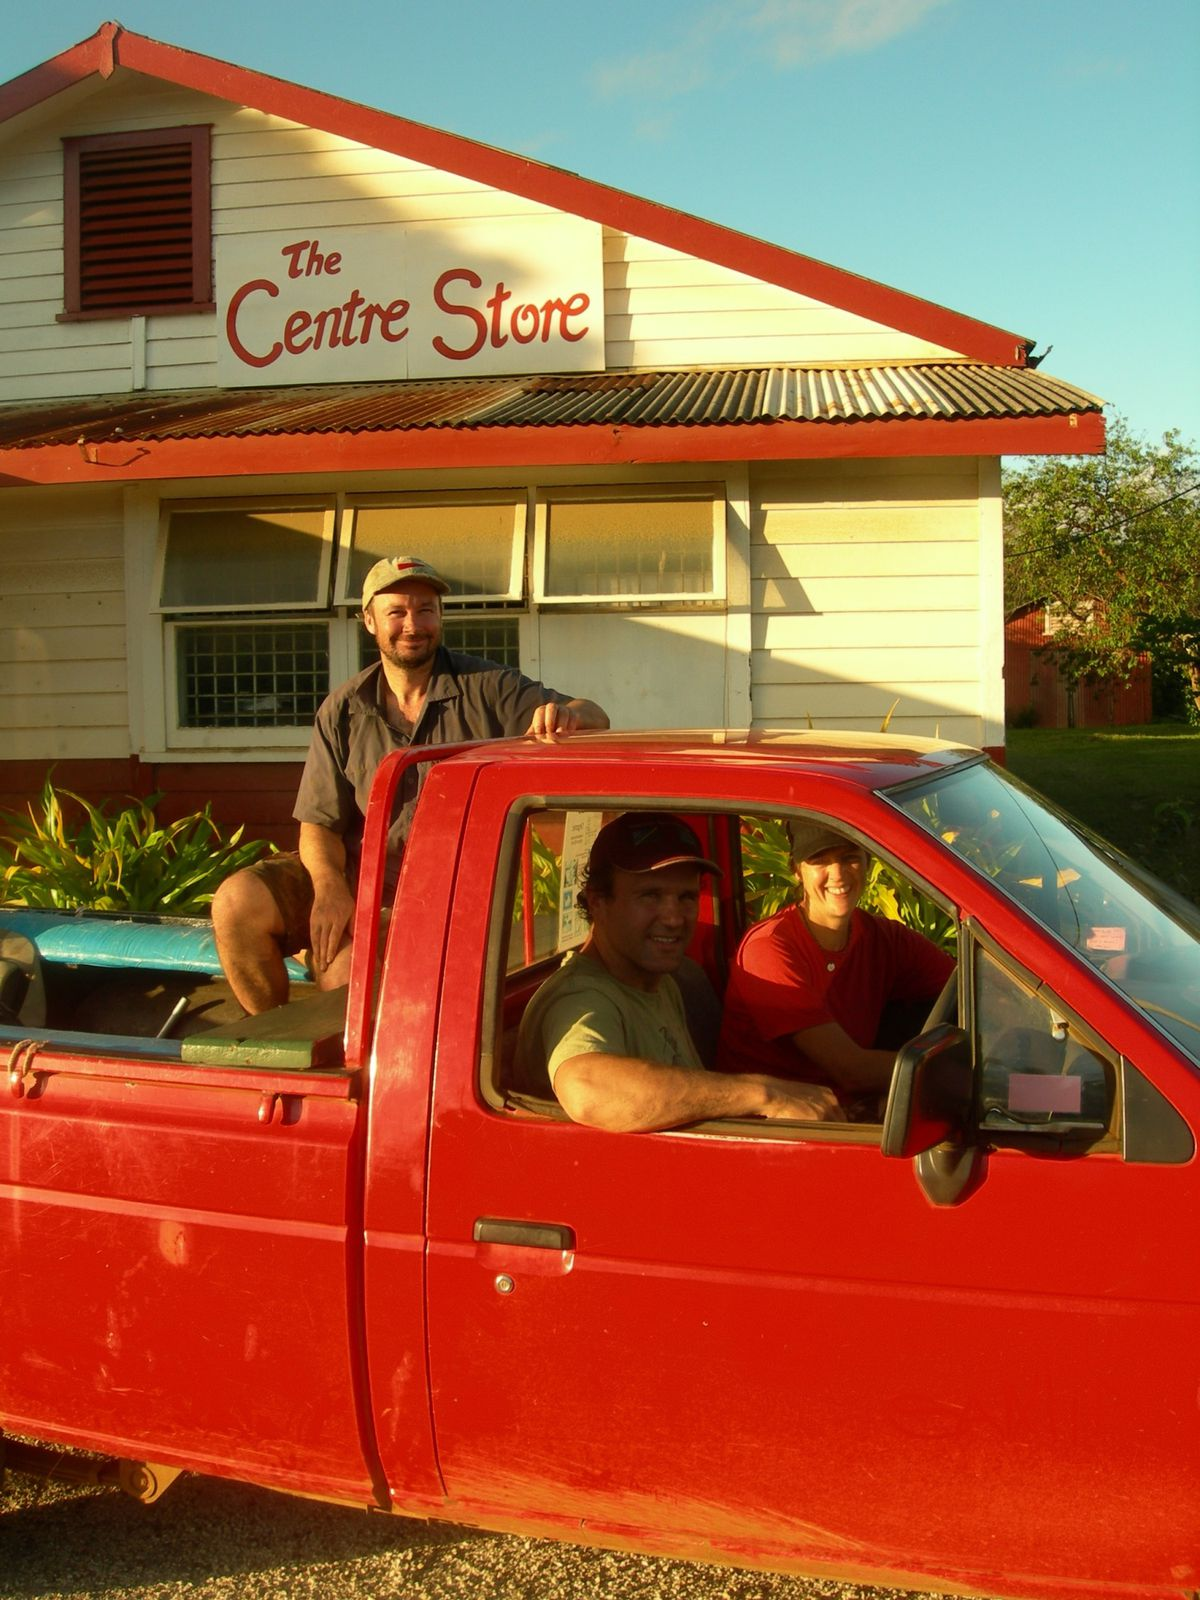 Atiu-26-sept-2009-team-in-red-car.jpg